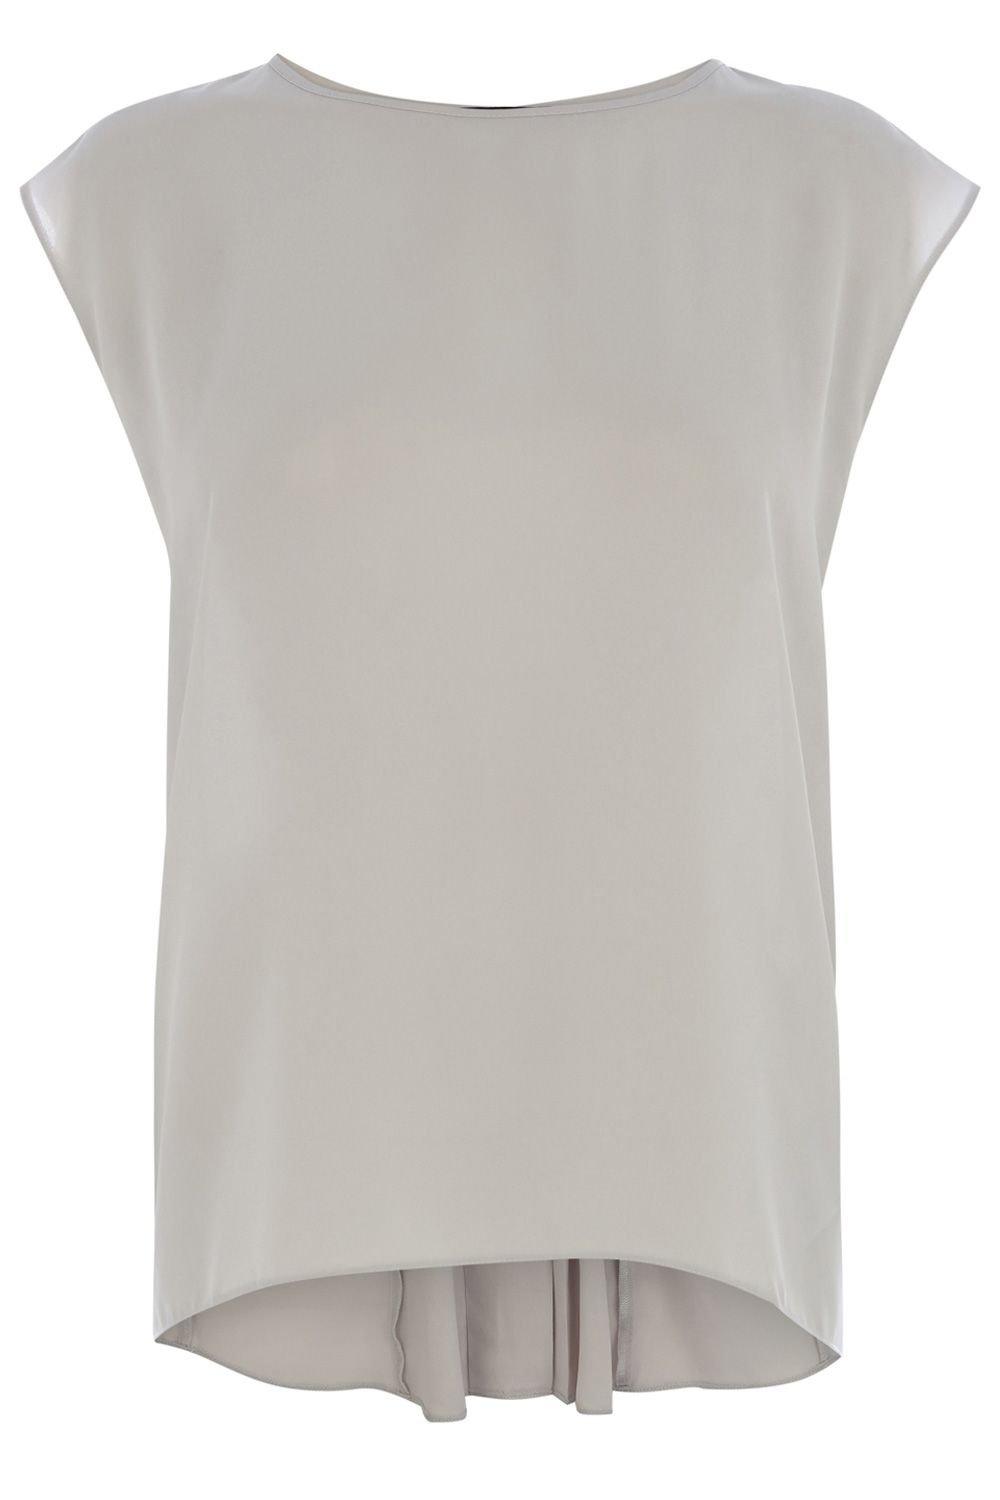 Pleat back T-shirt